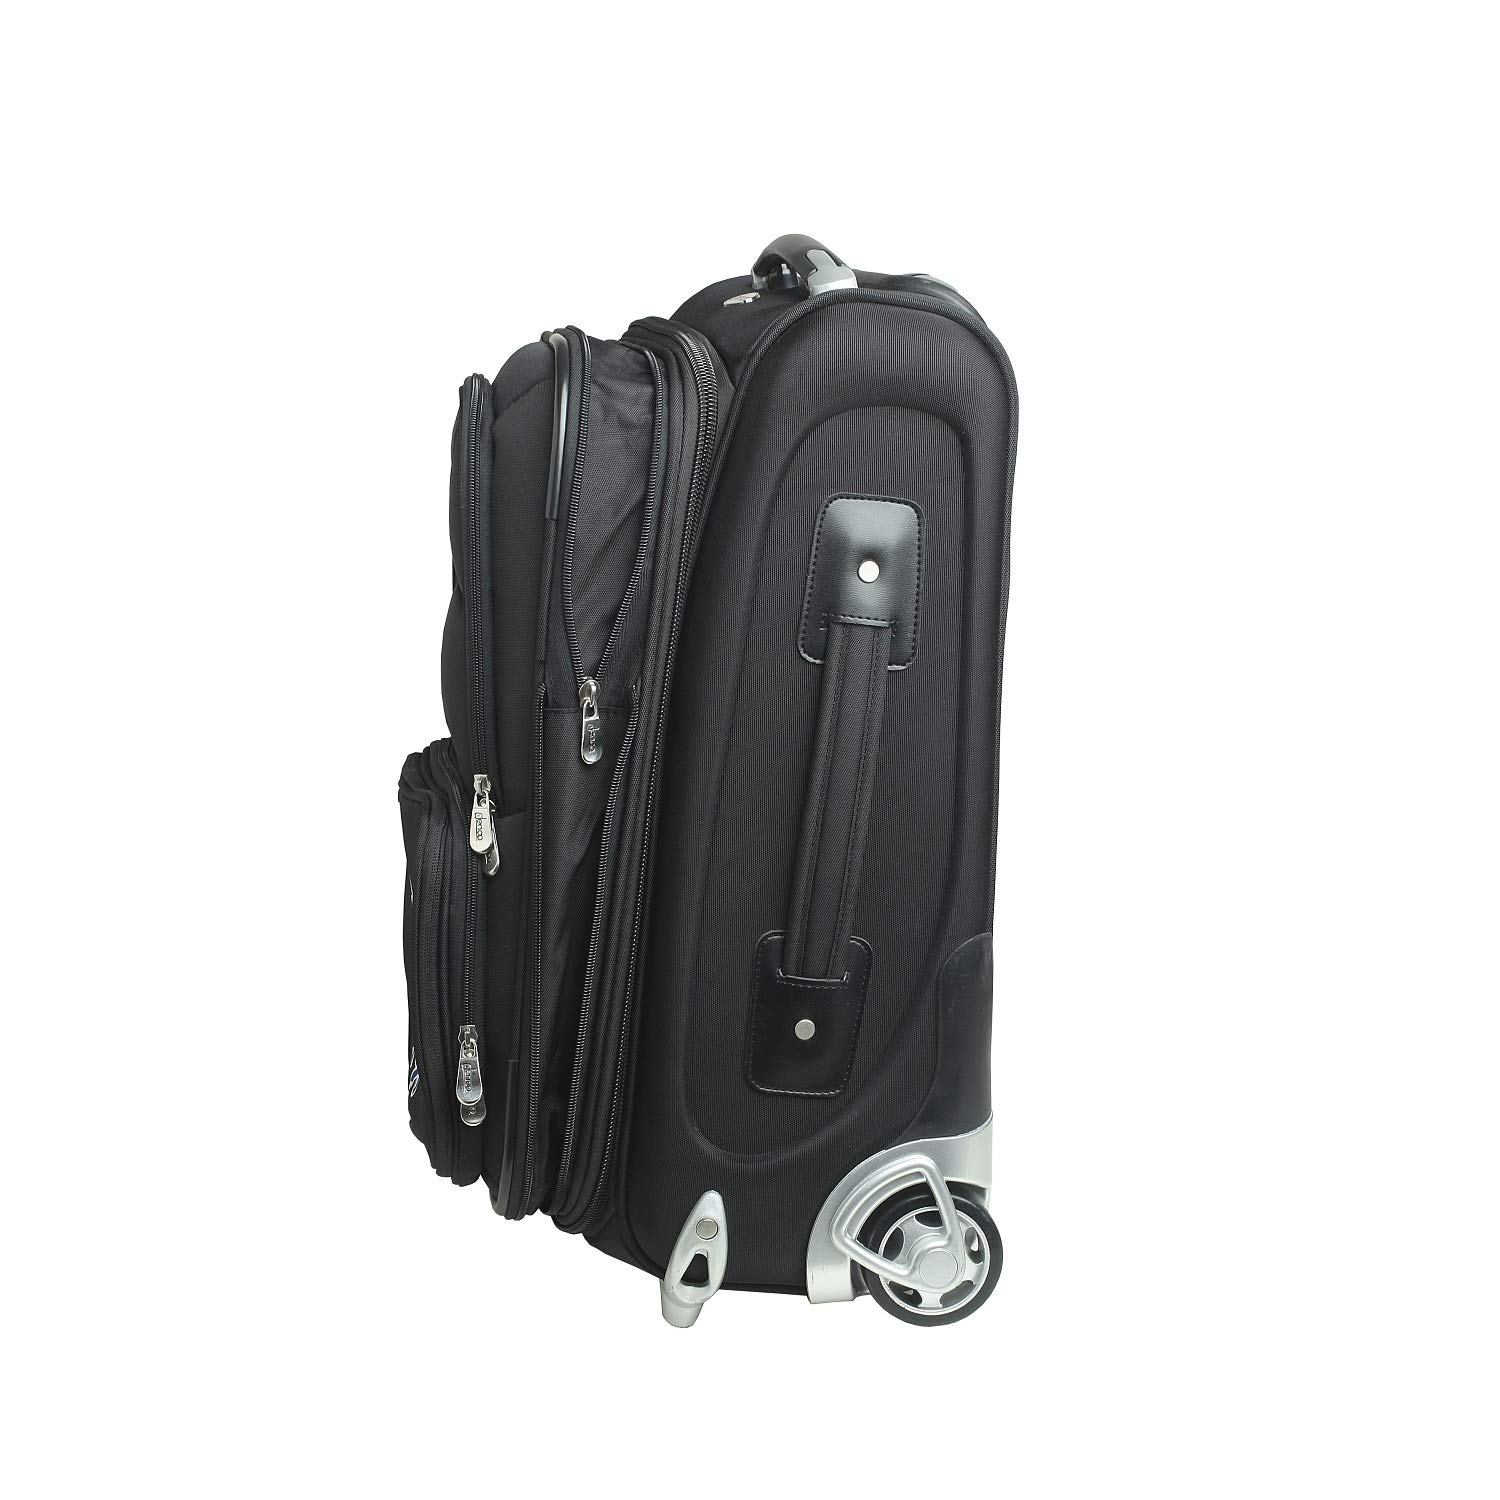 NFL Dallas Cowboys 21-inch Carry-On Luggage by Denco (Image #4)